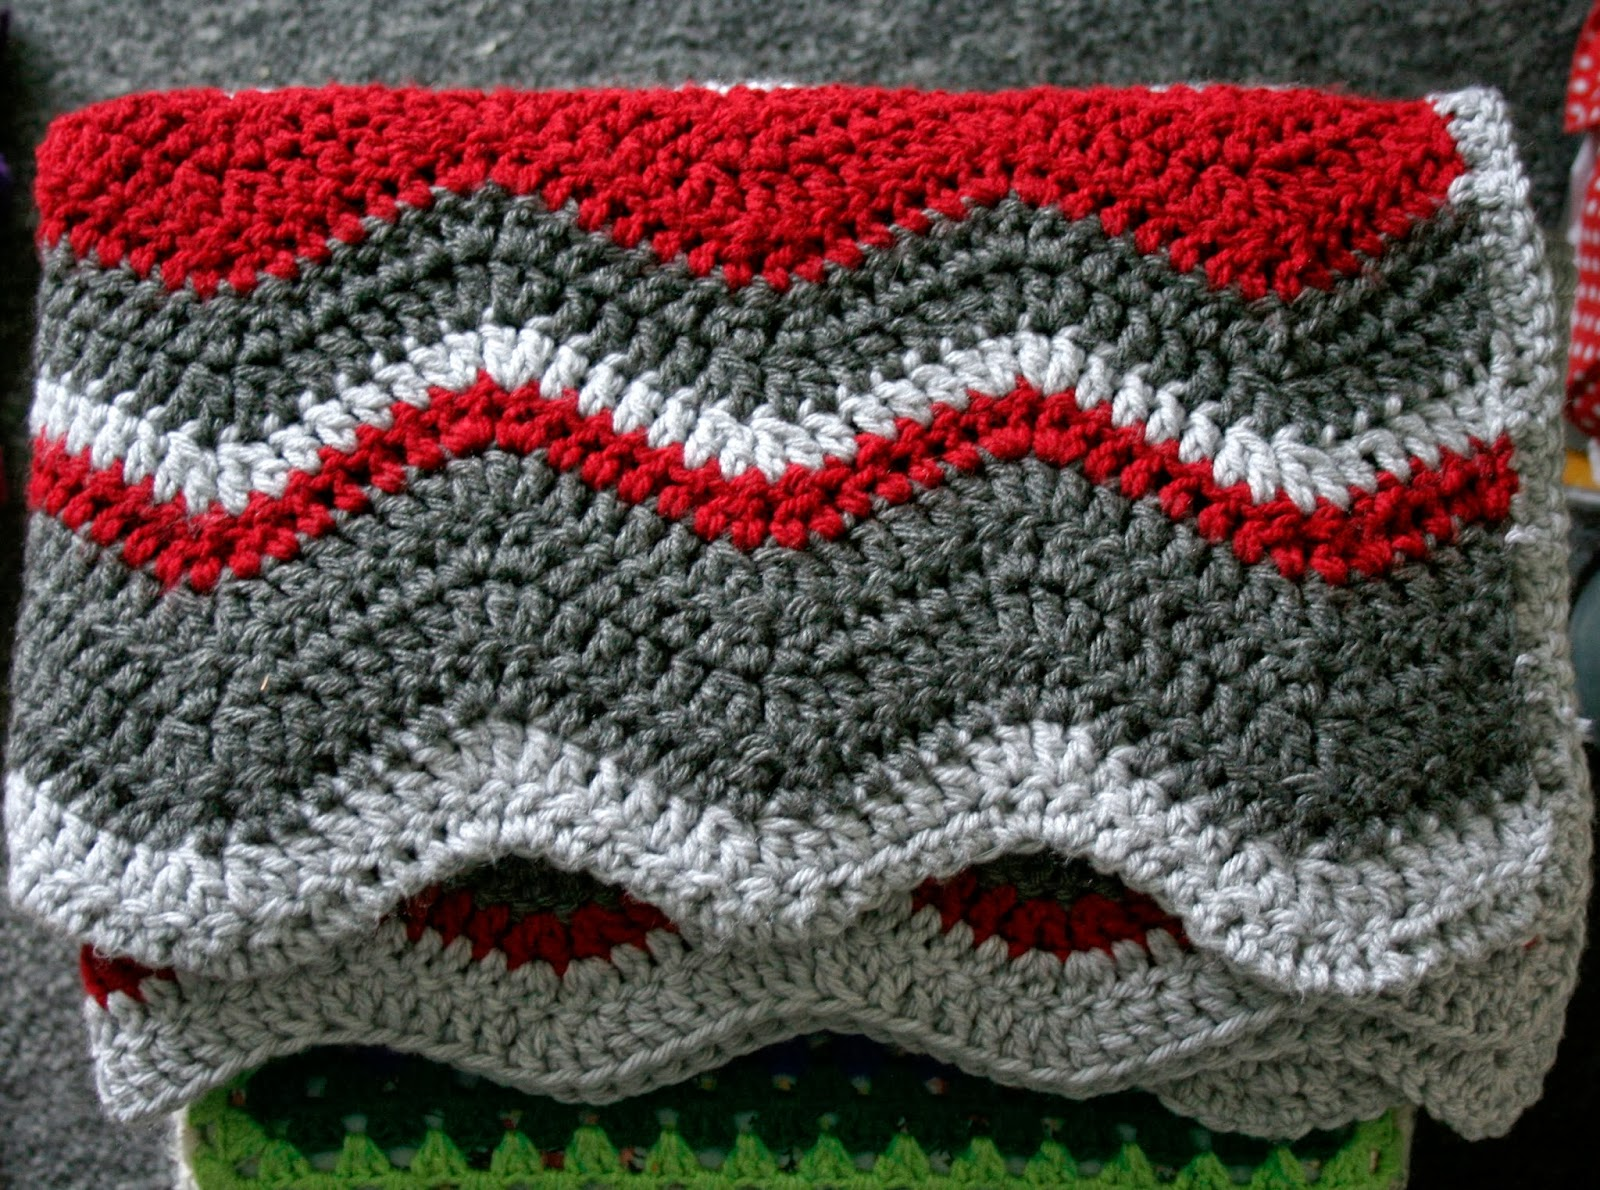 Crochet Ripple Blanket : Hazels Crochet: Snuggly Ripple Blanket